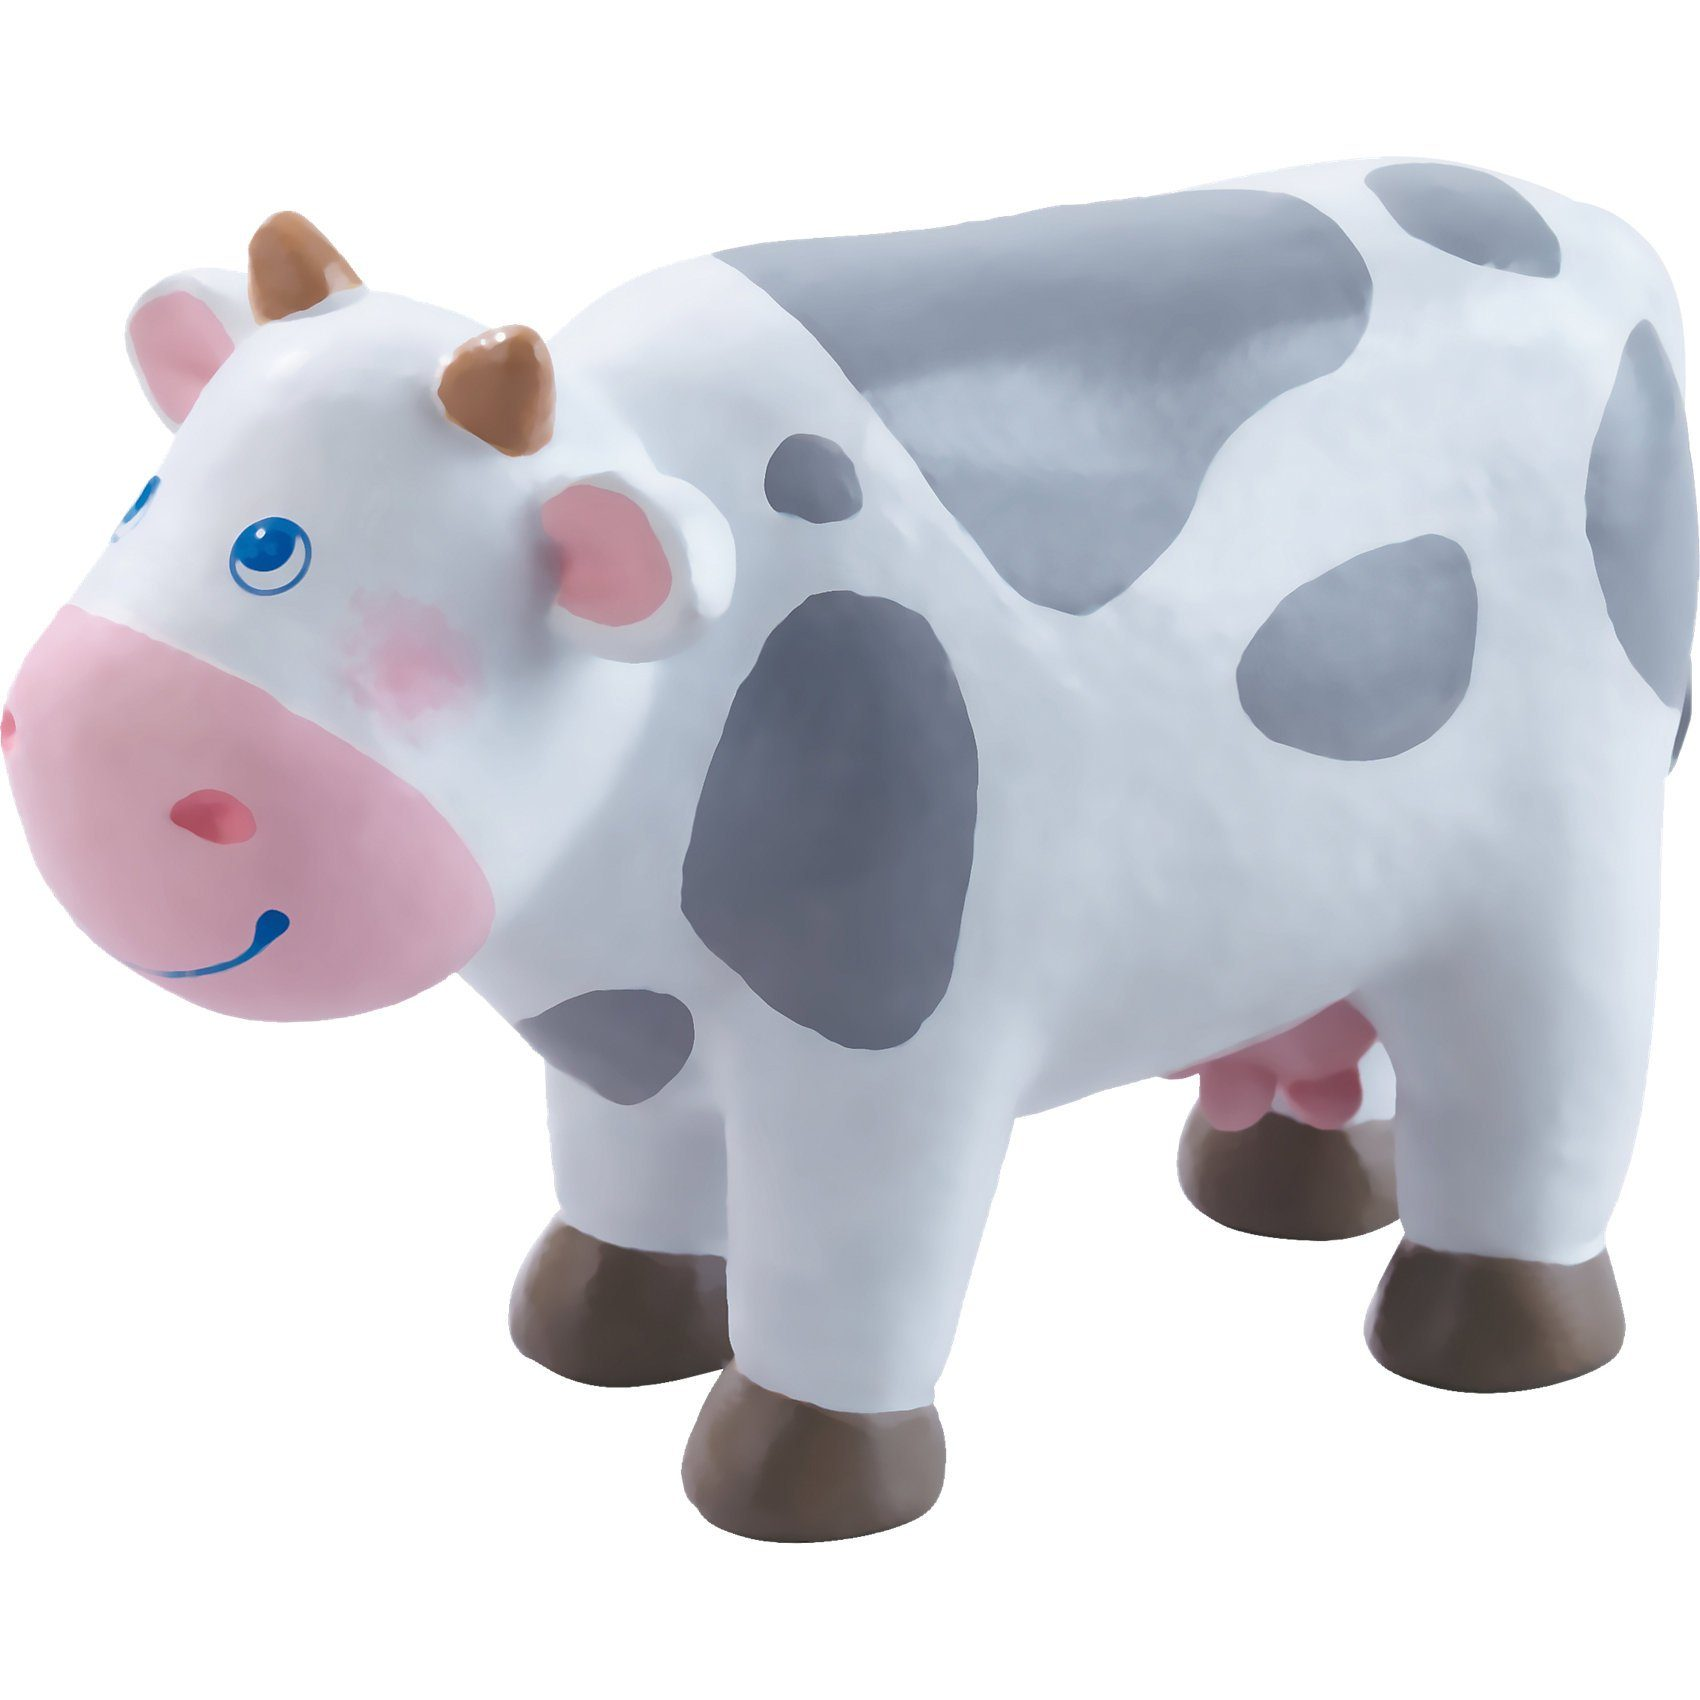 Haba 302979 Little Friends Bauernhof Kuh 11,5cm